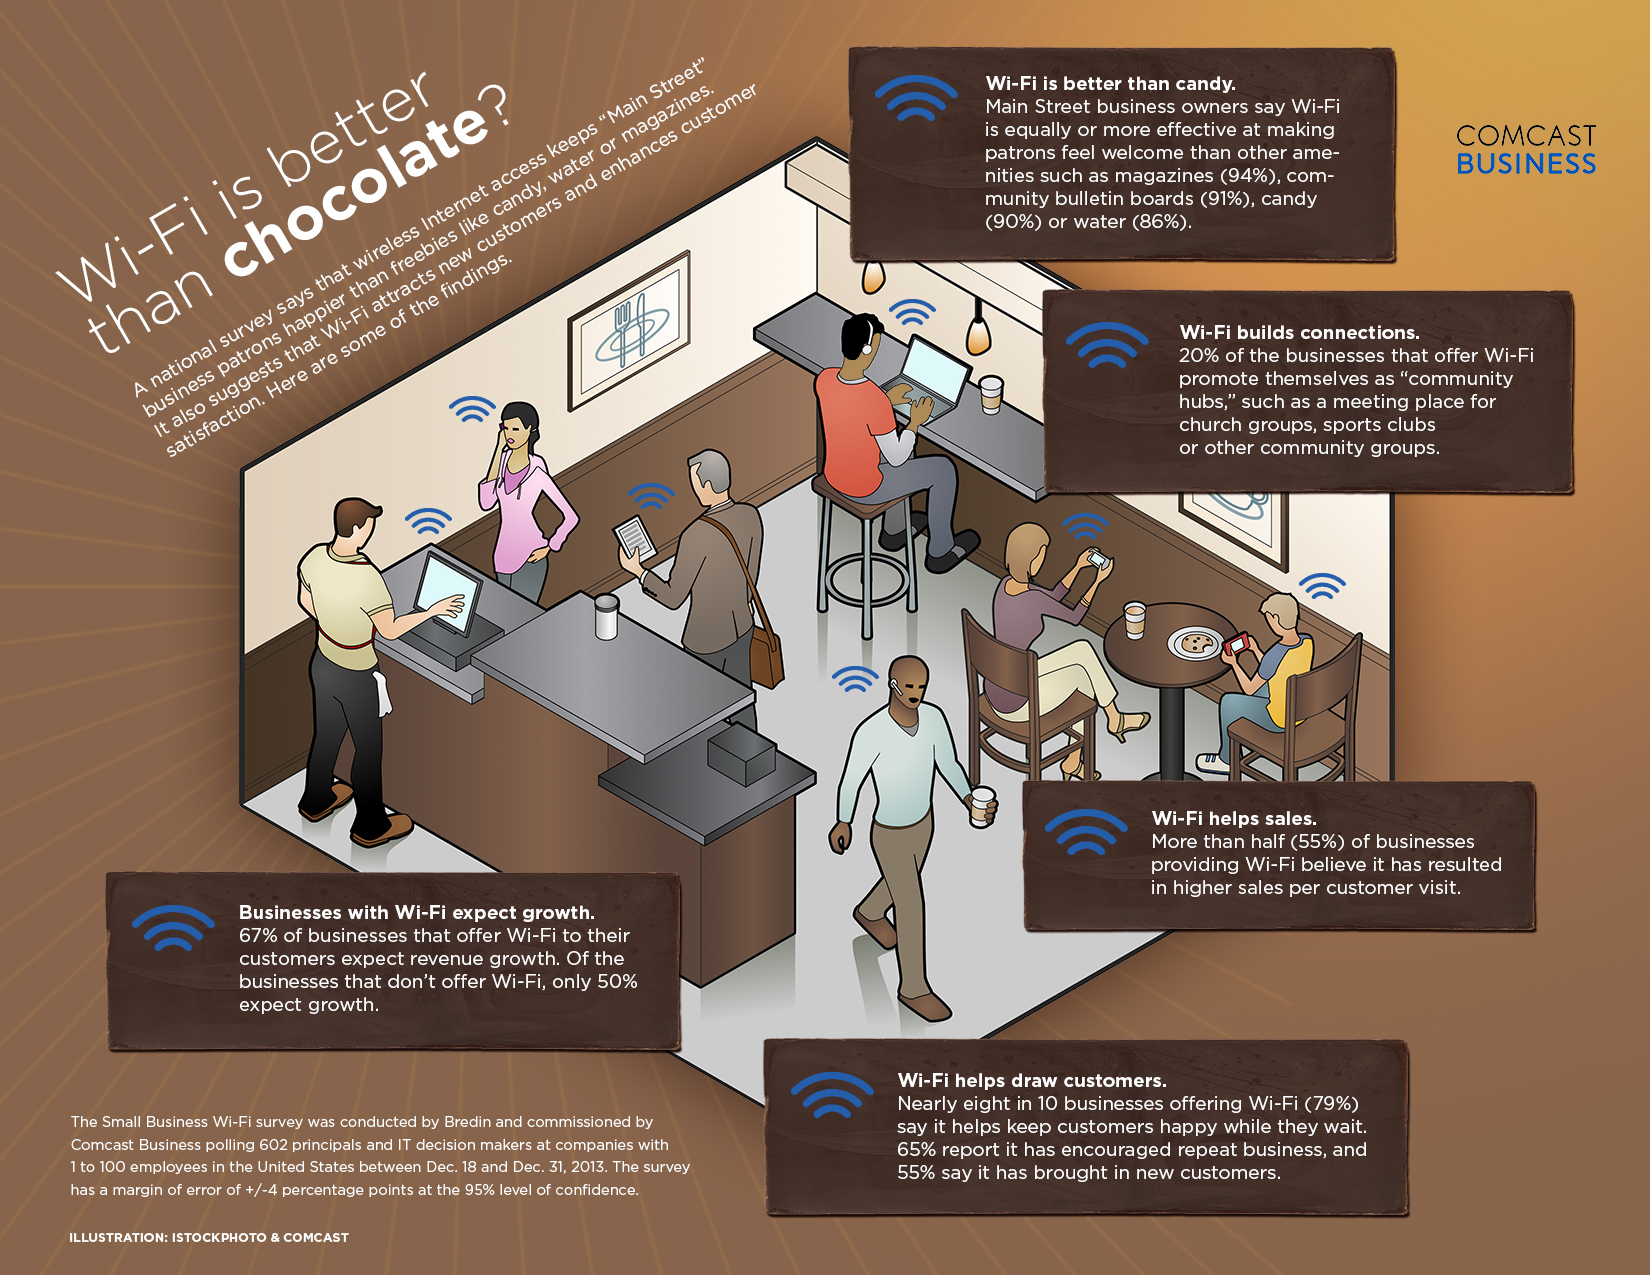 wifi-better-than-chocolate-infographic